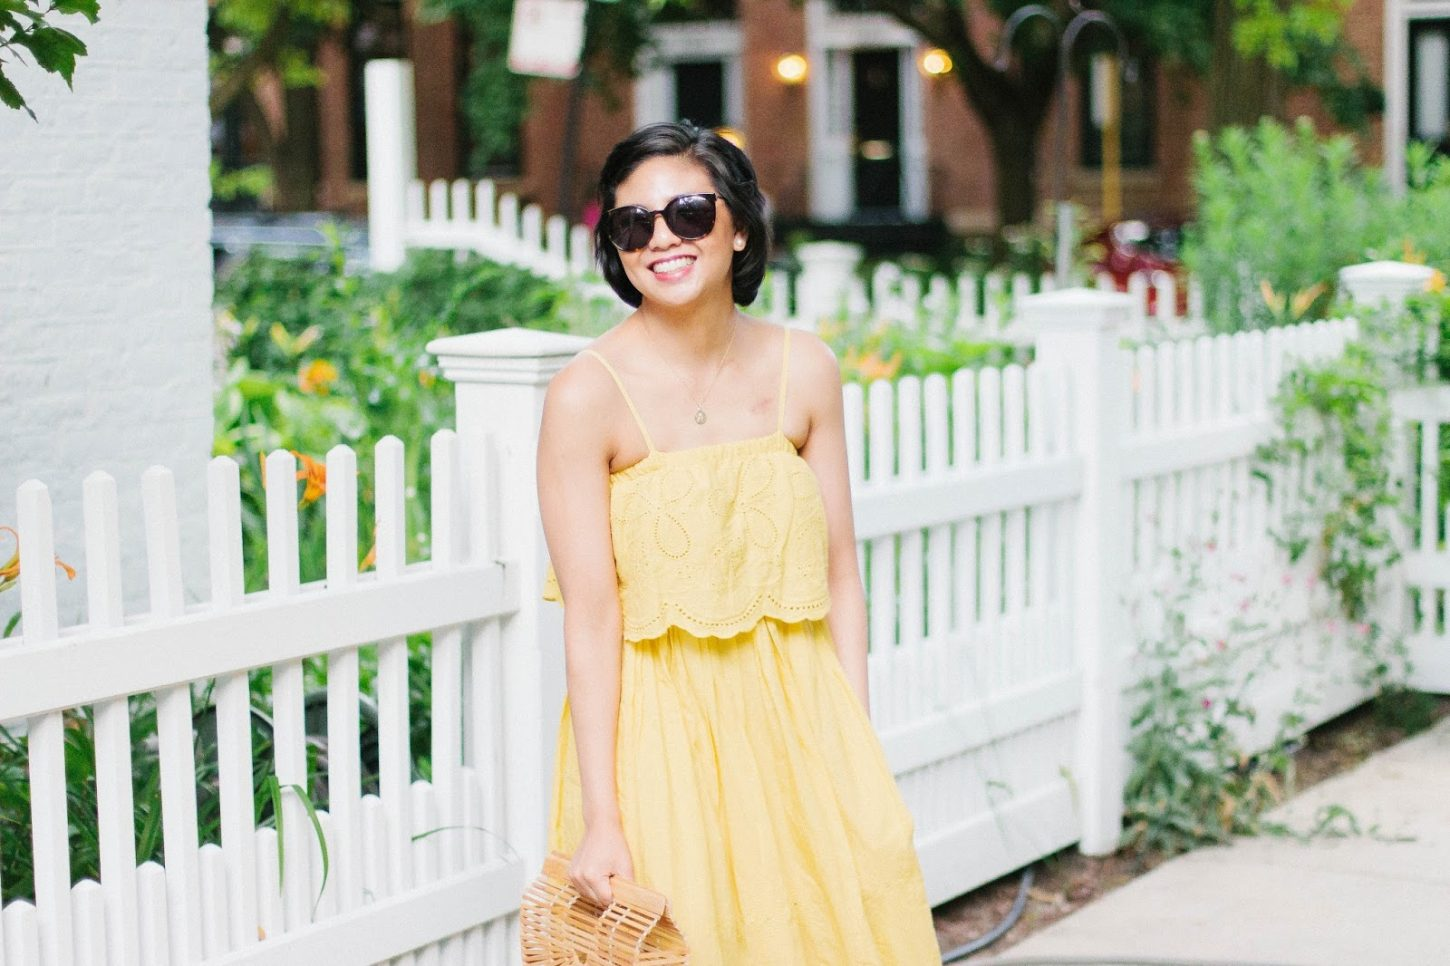 The quintessential summertime dress